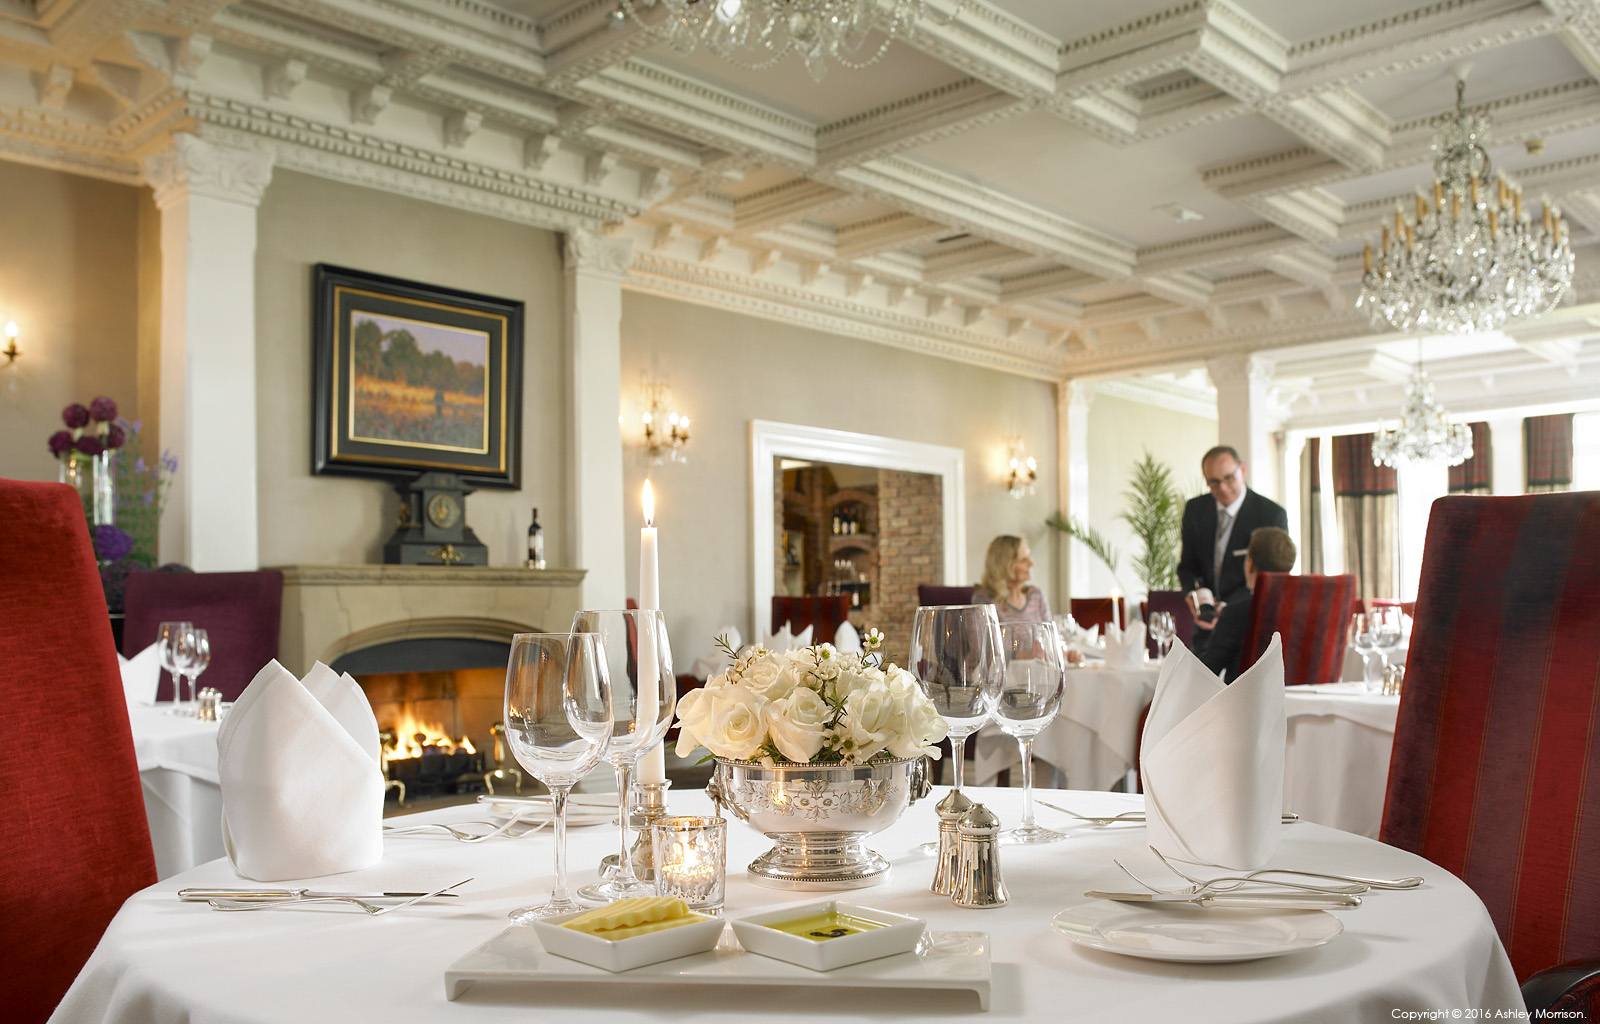 The Park Restaurant dining room at Killarney Park Hotel in the Irish County of Kerry.